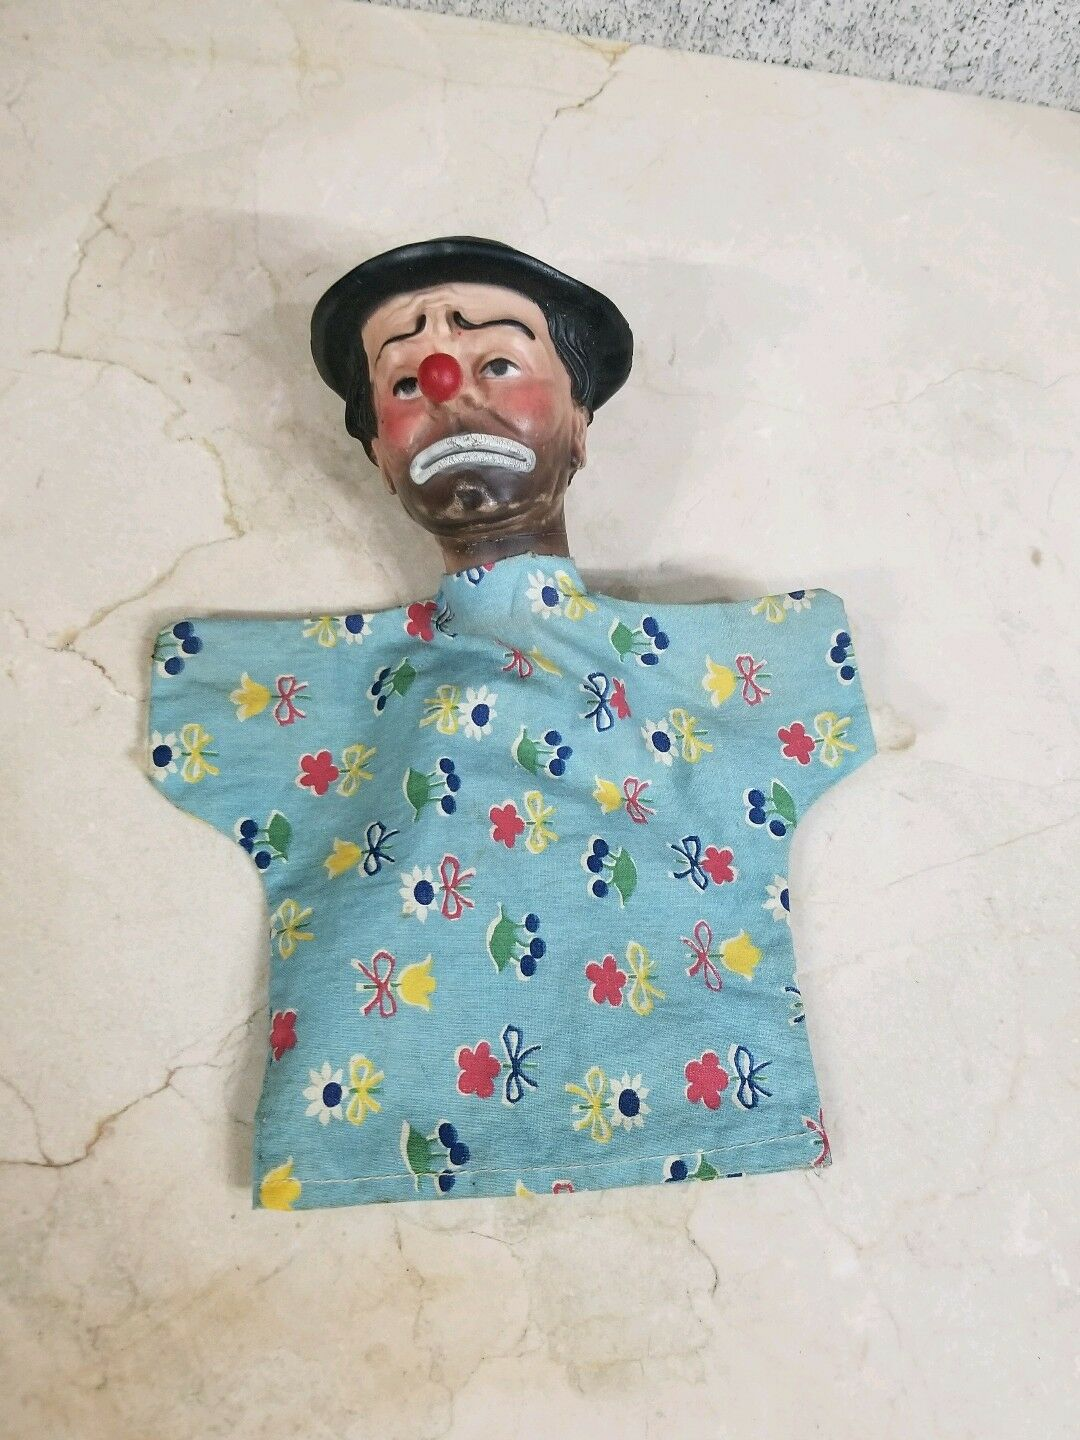 Vintage Extremely Rare Rare Rare Emmett Kelly Clown Puppet Doll 3416a2